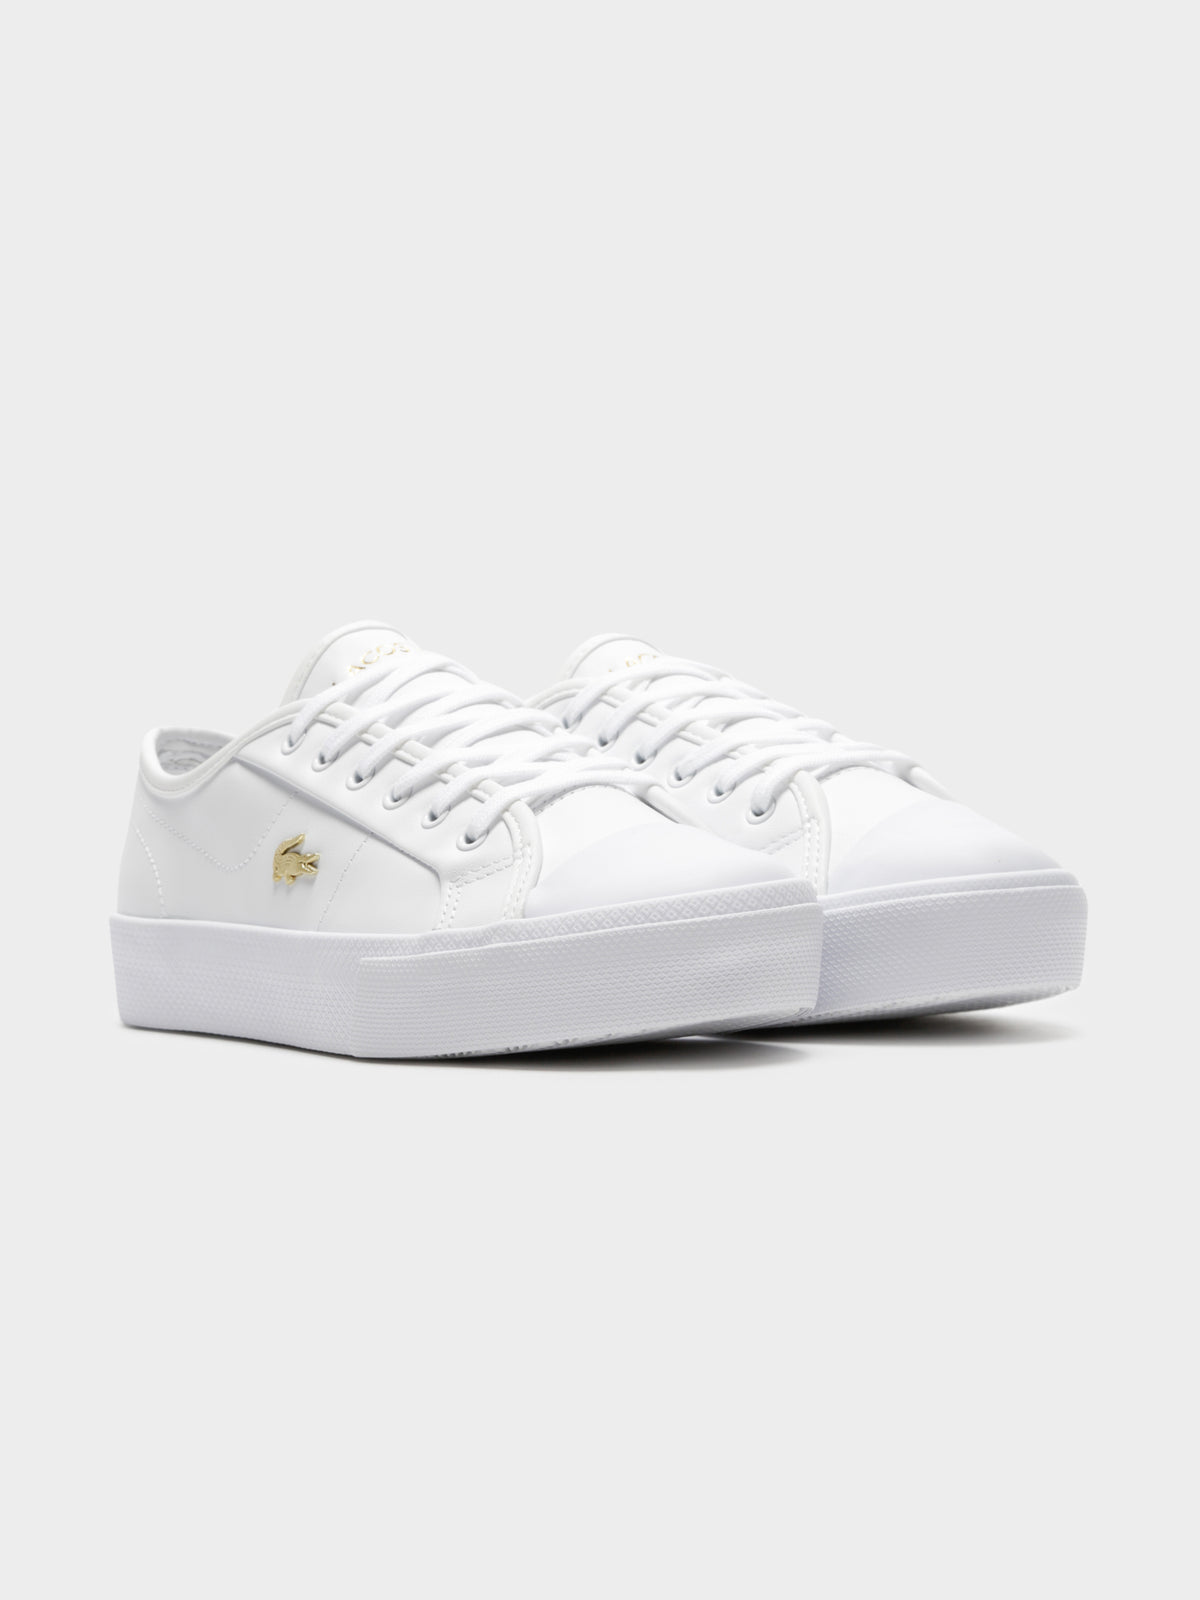 Womens Ziane Plus Grand 120 Sneakers in White